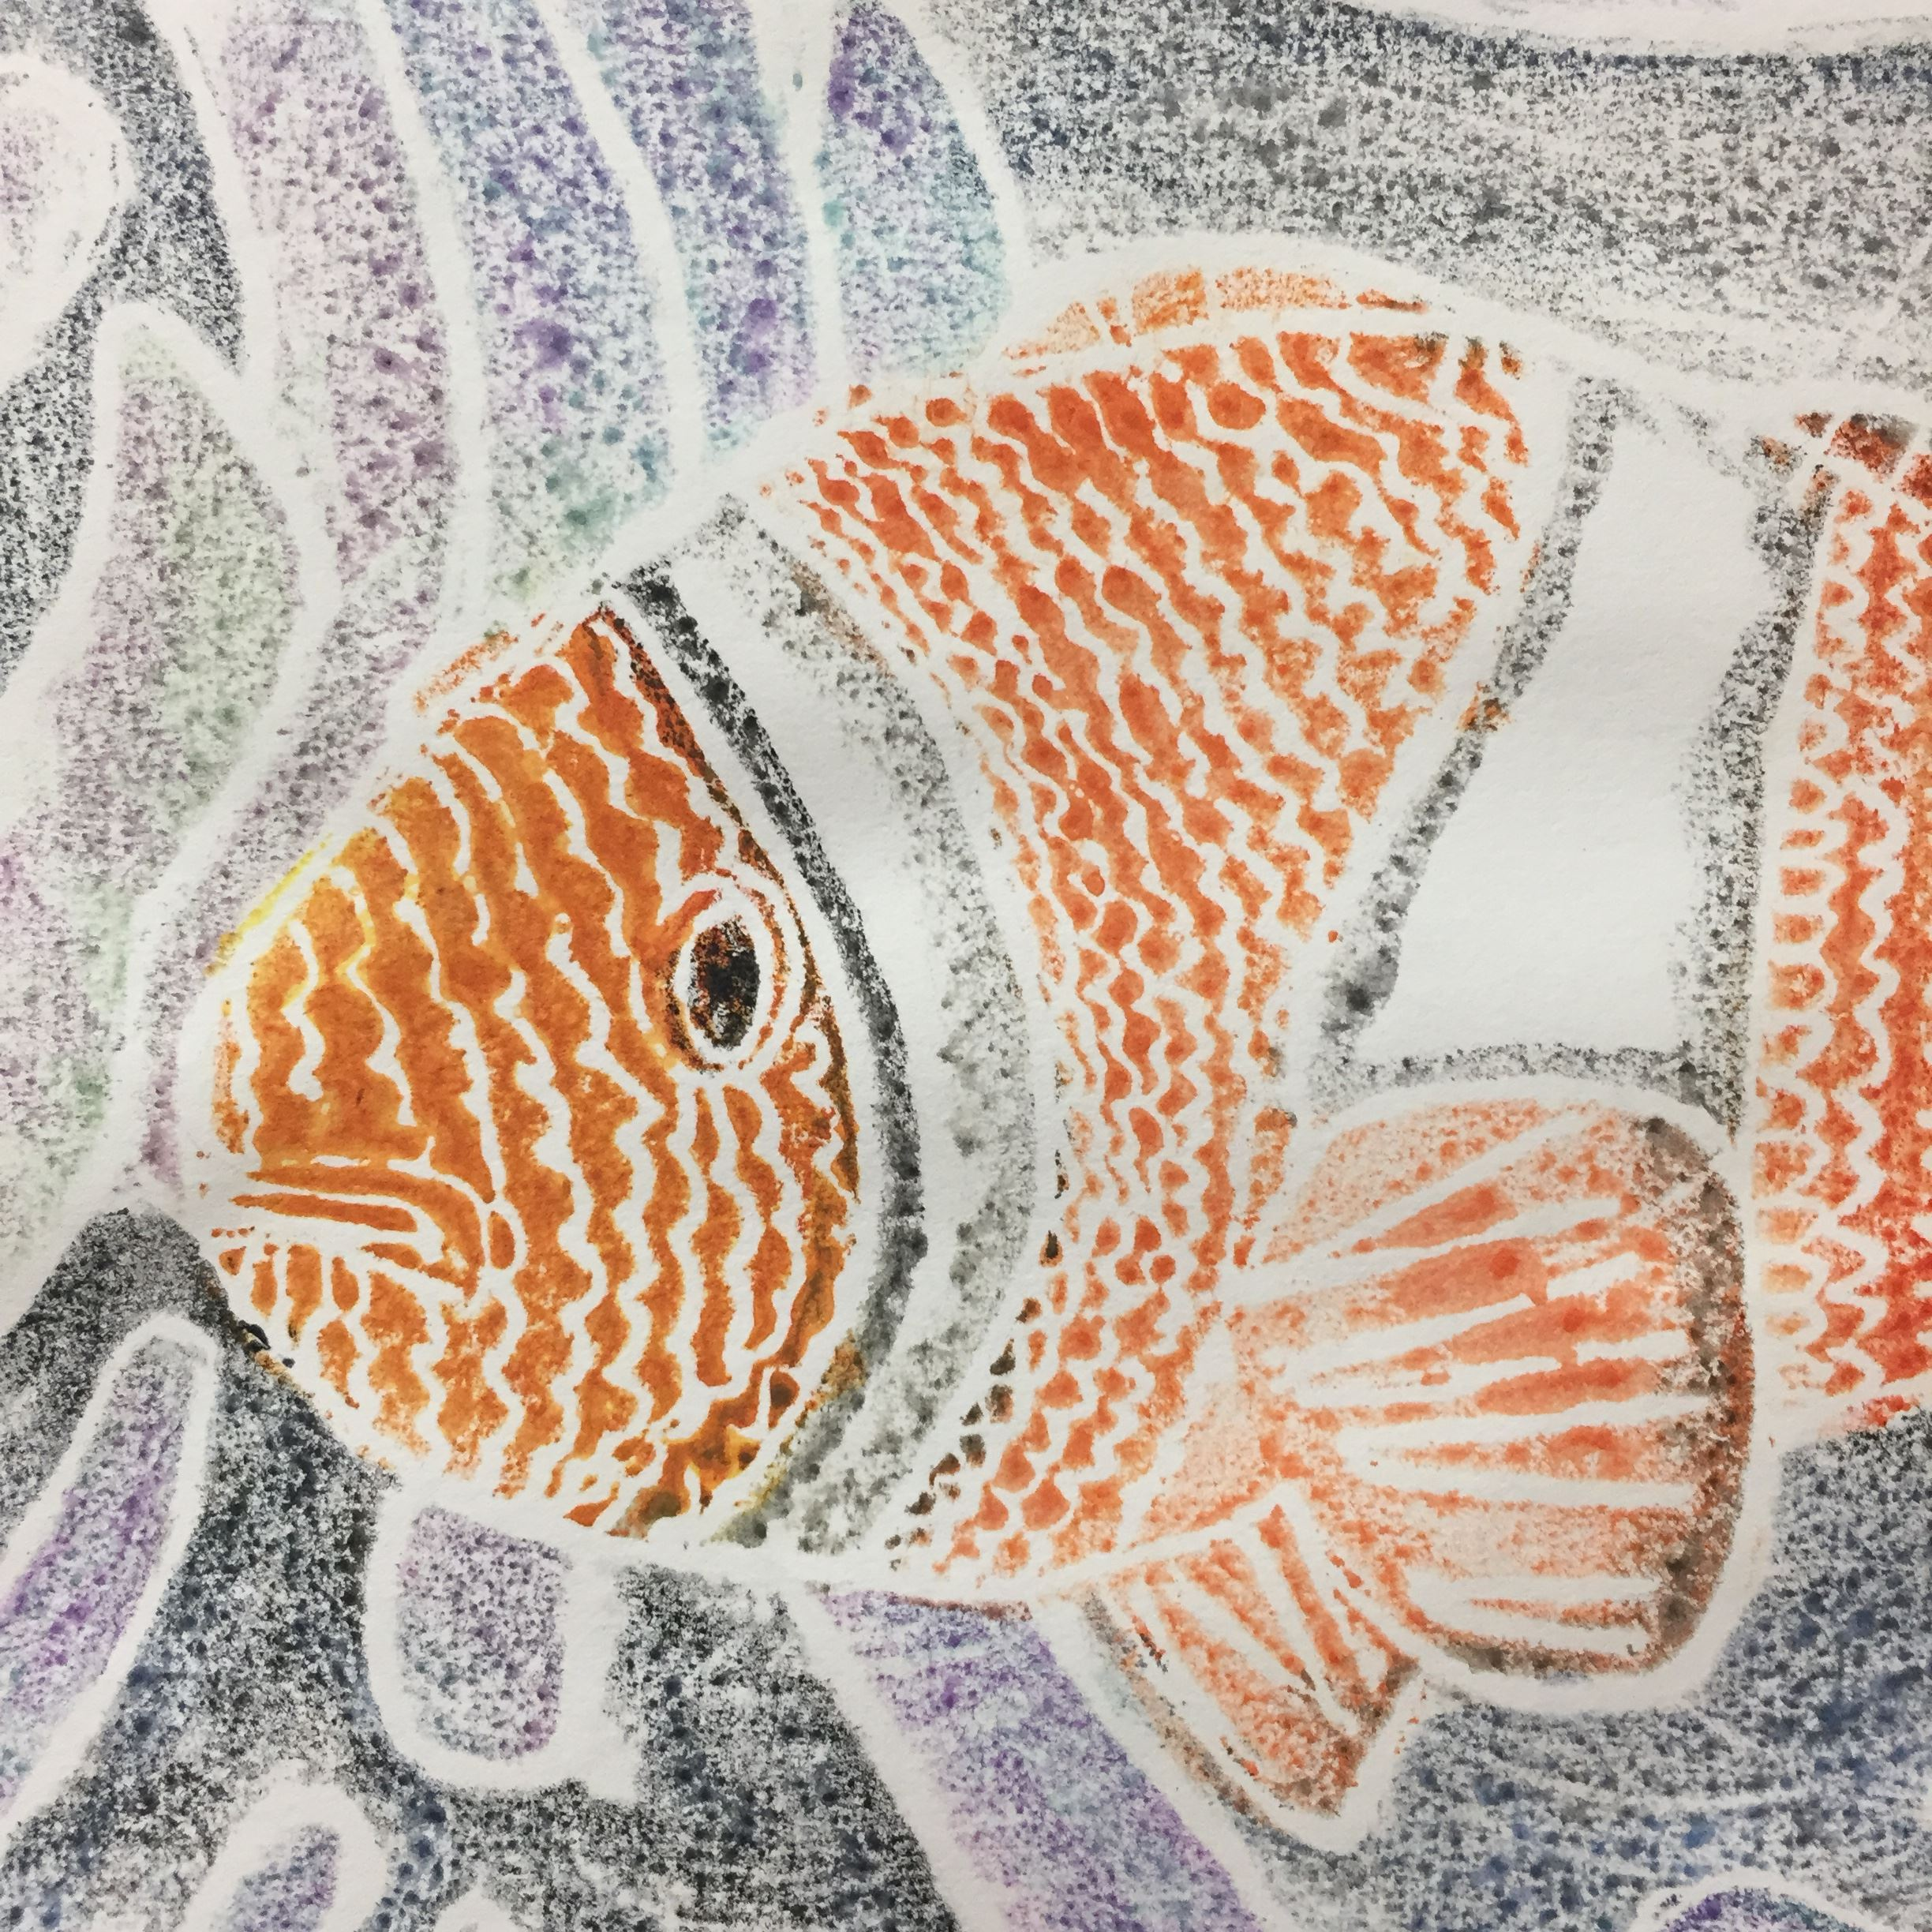 Painting of orange and white fish